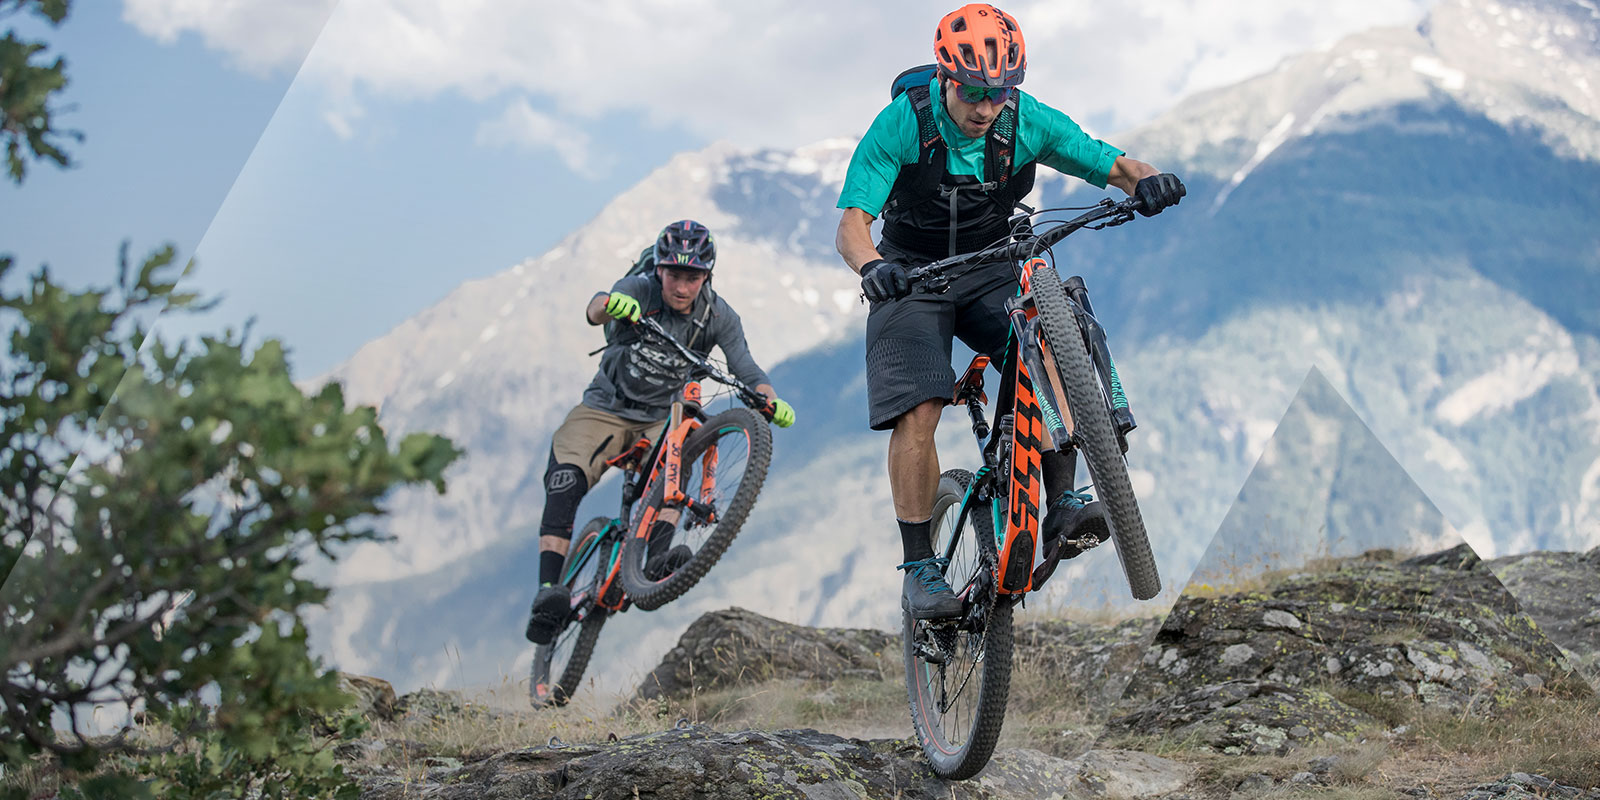 15 AWESOME MOUNTAIN BIKE TIPS FOR BEGINNERS